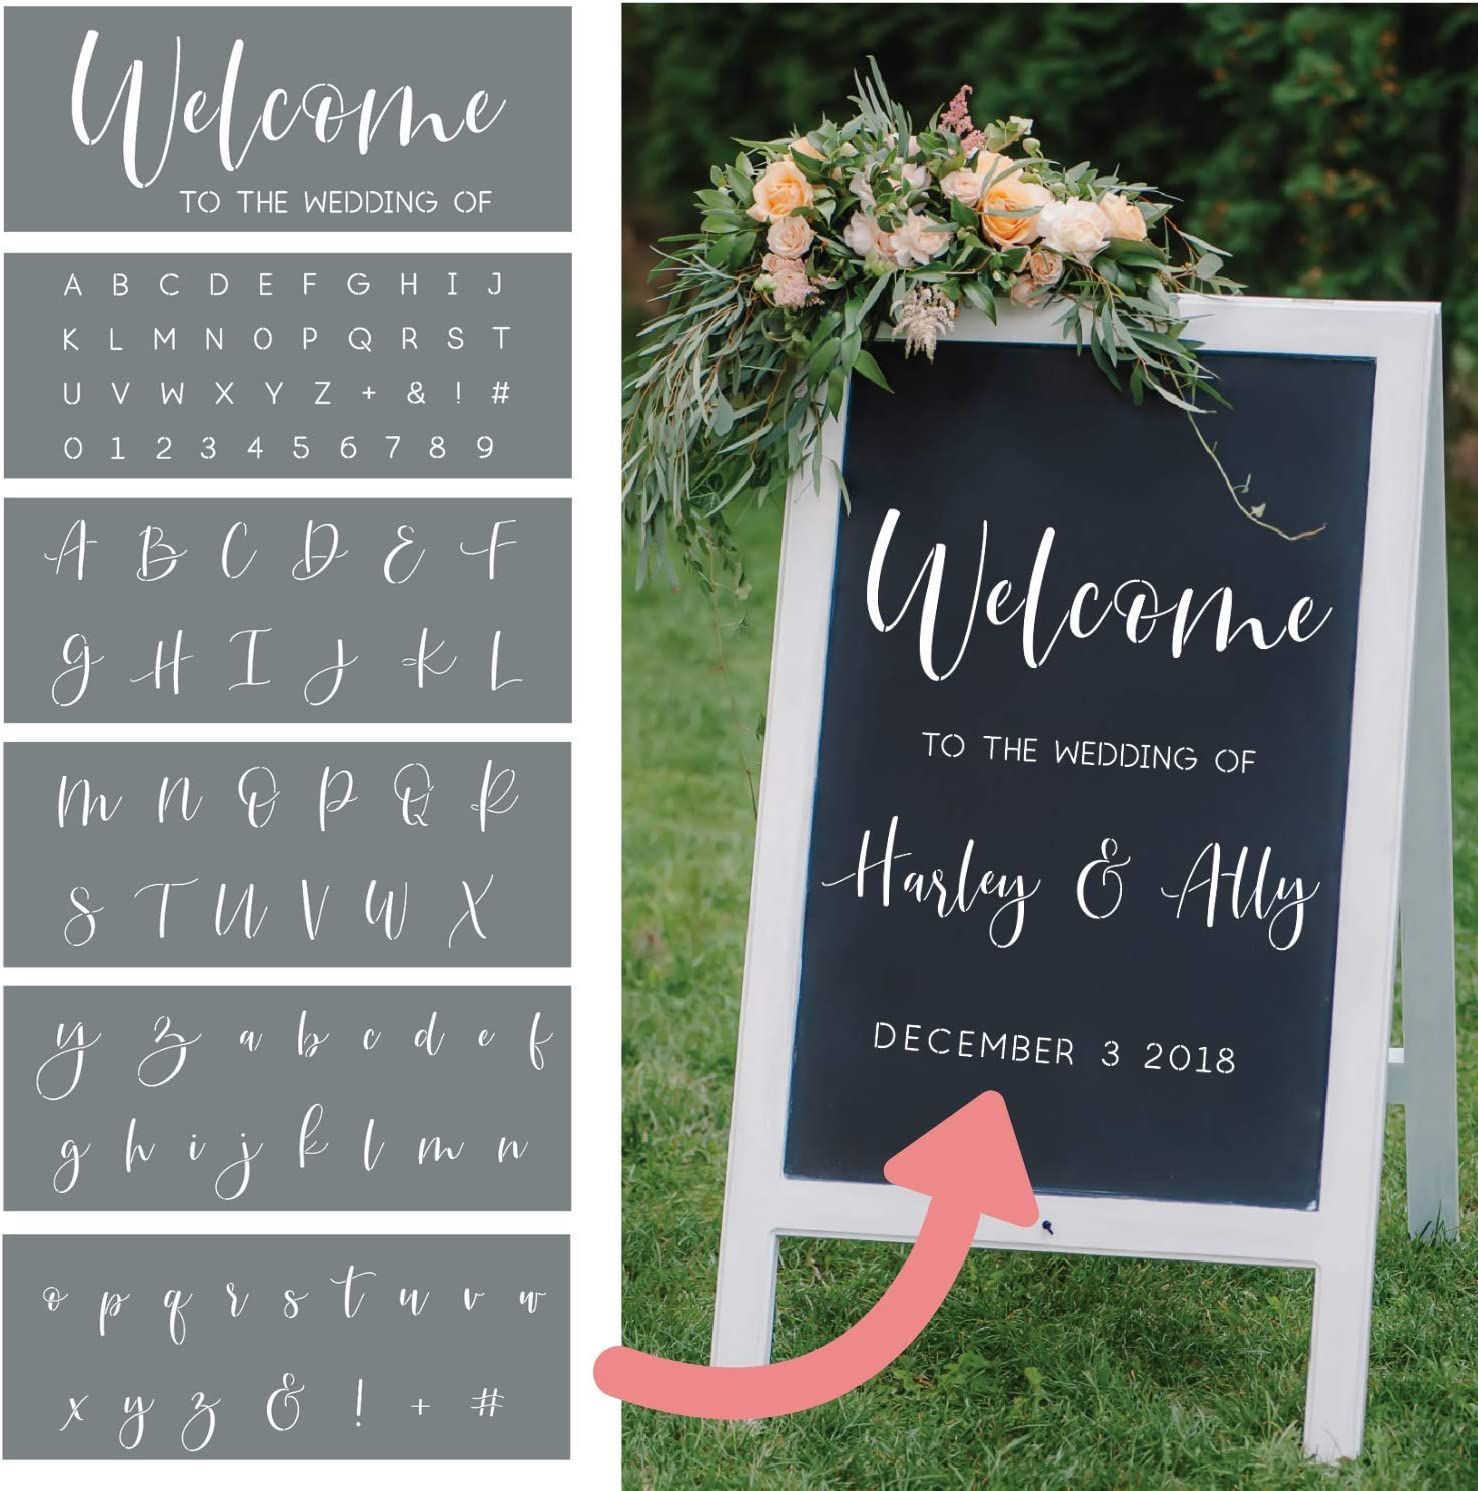 Metal Surfaces  WW922 Bride /& Groom Names with Date Wedding STENCIL for DIY Personalizing Runners Glass Walls Posters Floors Signs